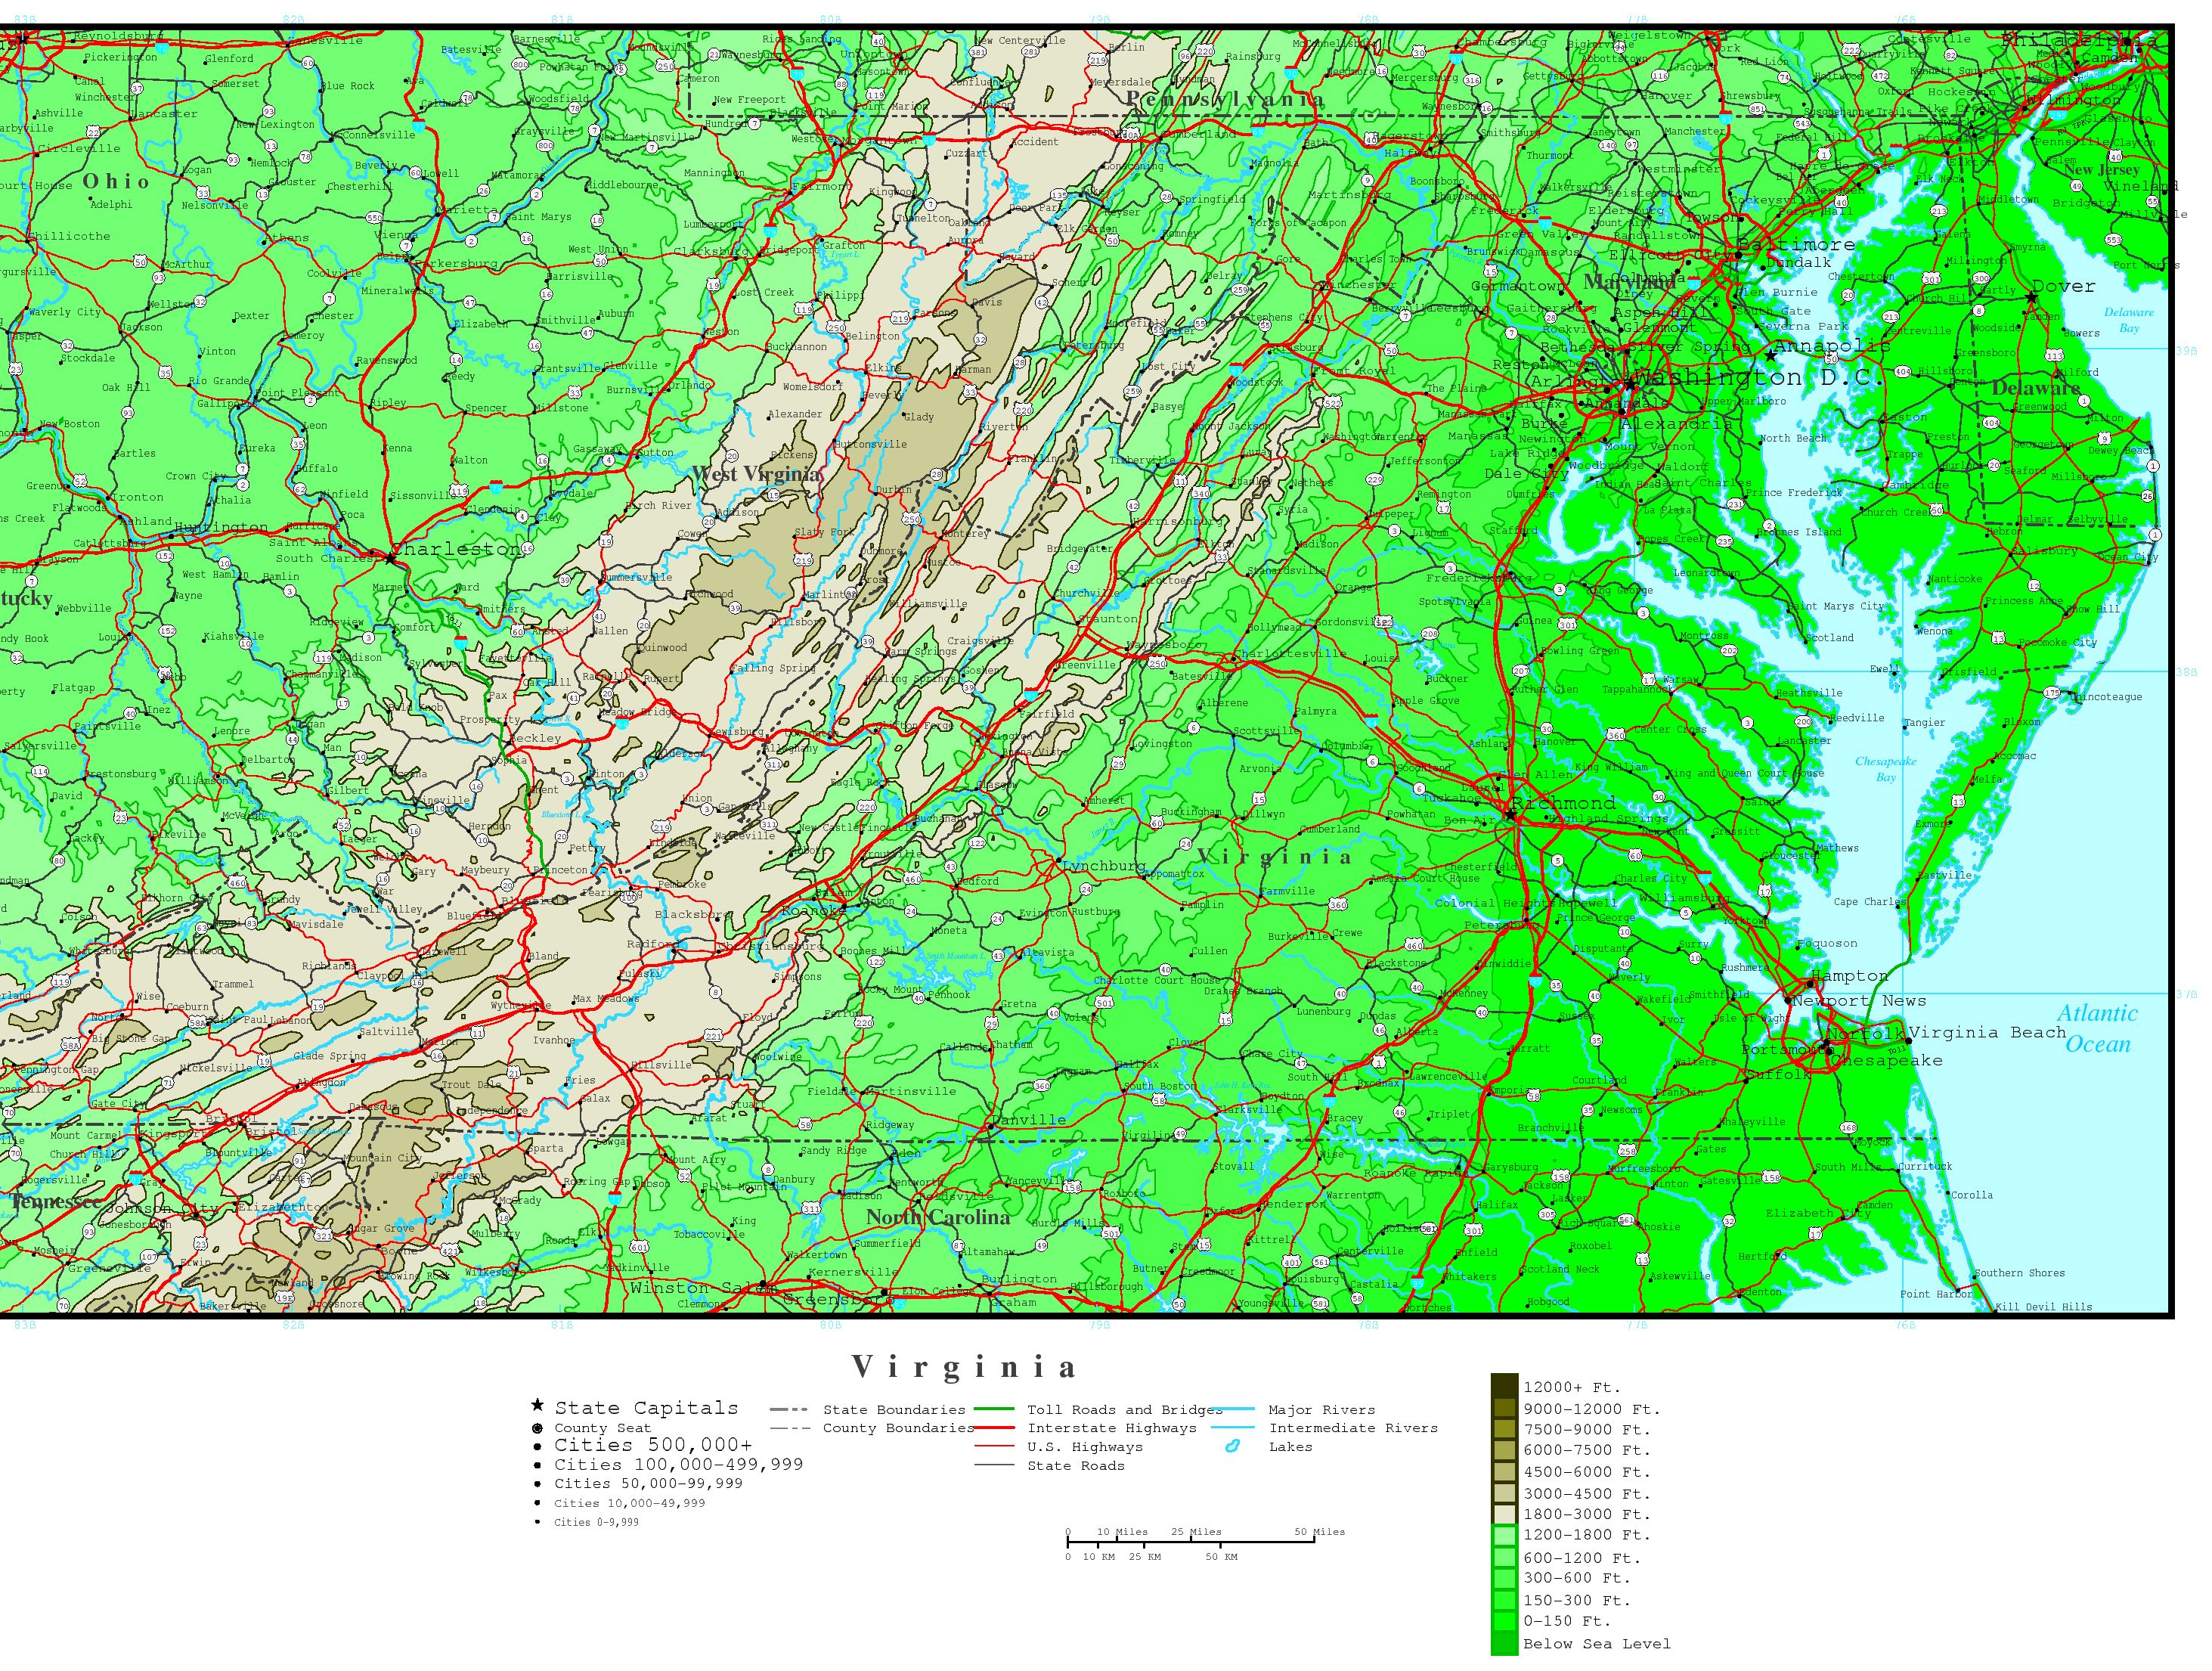 Virginia Elevation Map - Interactive topo map